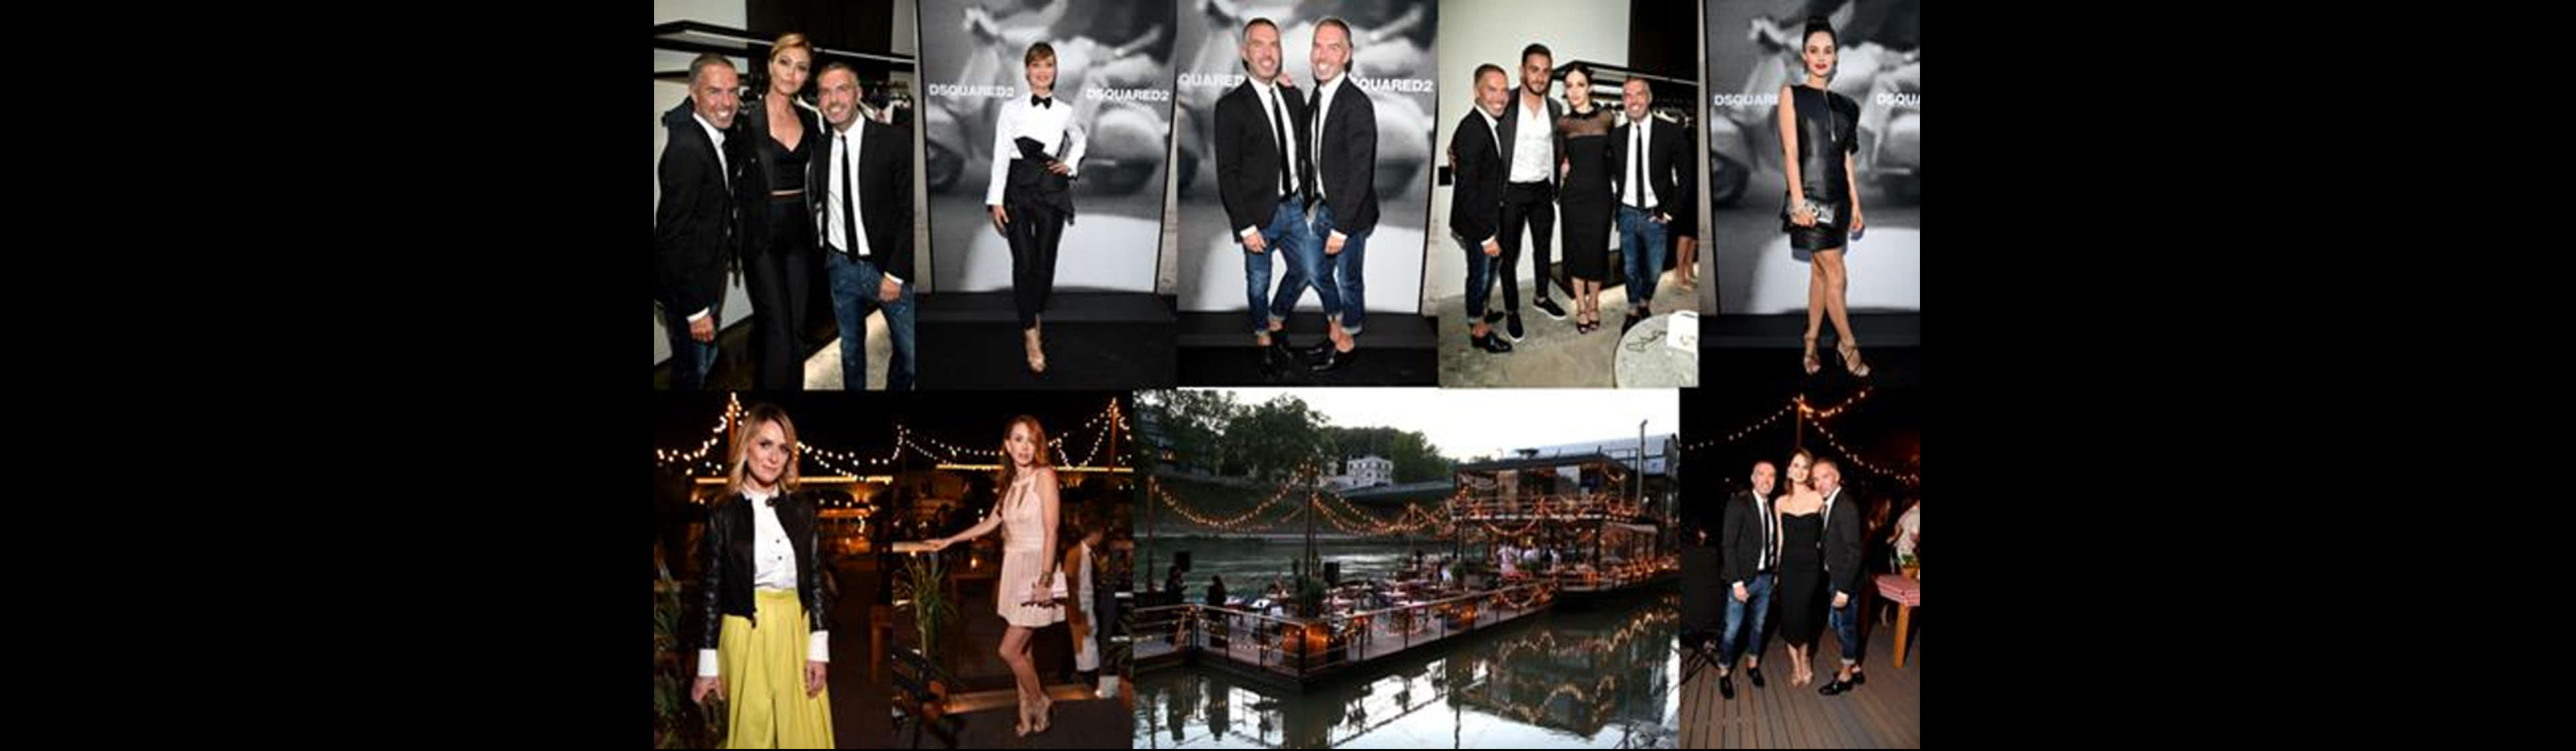 DSquared2 Celebrate the Opening of Their Flagship Store in Rome